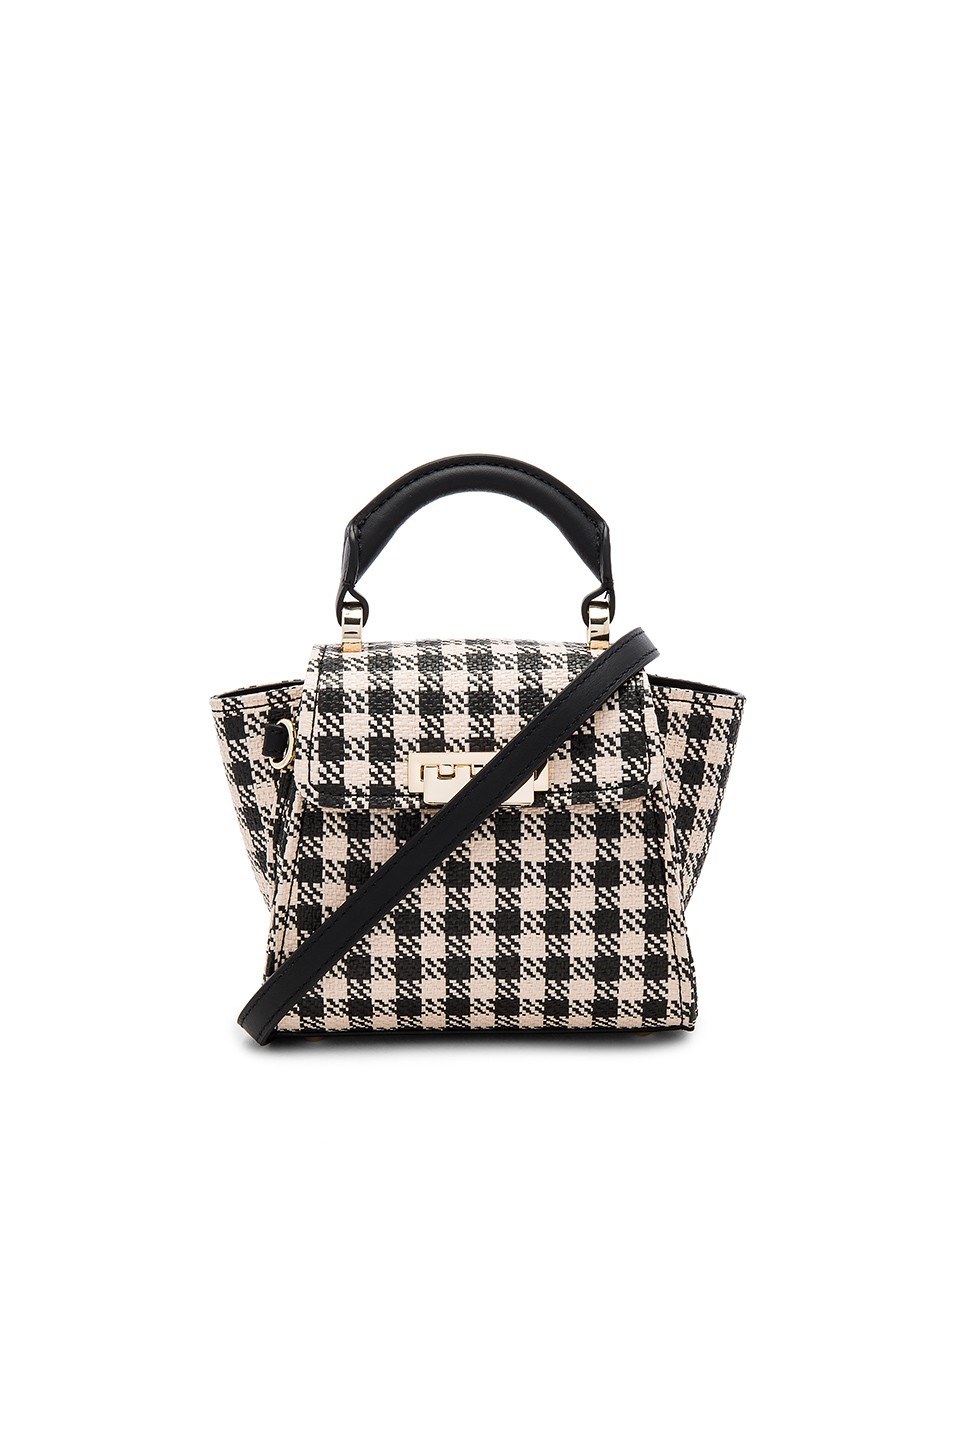 Eartha Iconic Mini Gingham | Zac Zac Posen $295